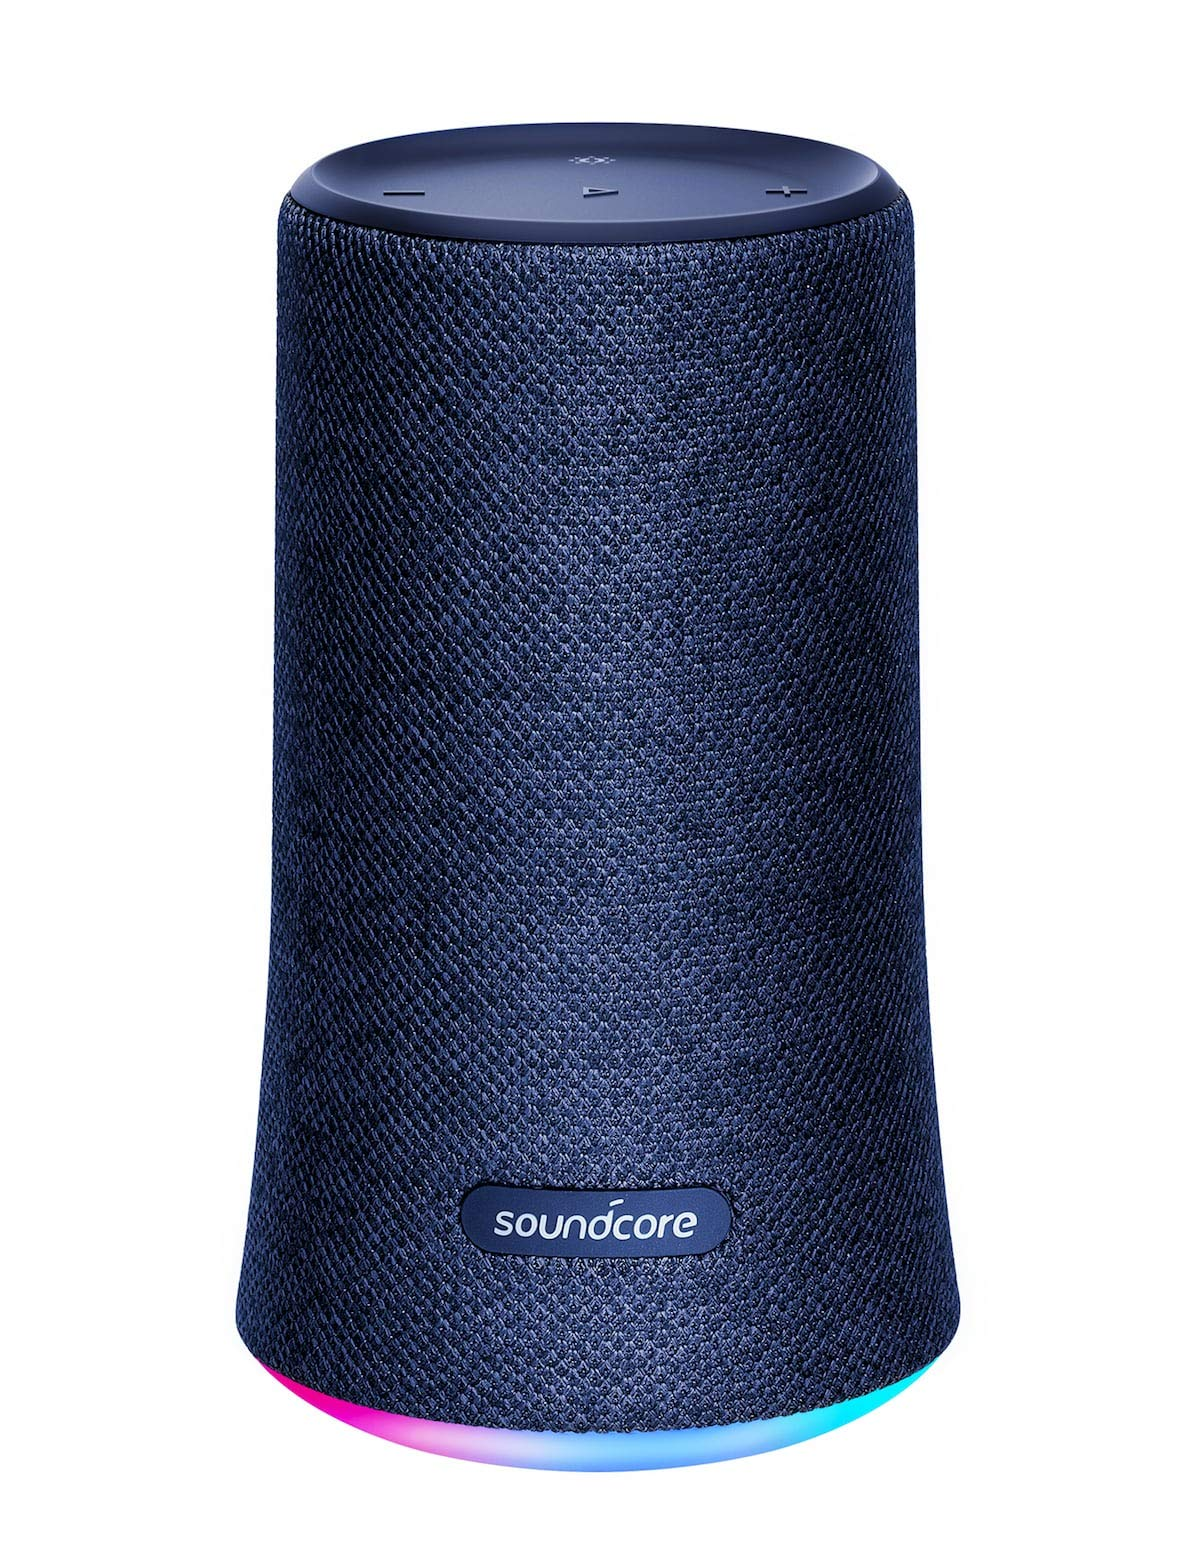 Bluetooth Speaker, Soundcore Flare Wireless Bluetooth Speaker by Anker, Portable Party Speaker with 360° Sound, Enhanced Bass & Ambient LED Light, IP67 Dustproof & Waterproof and 12-hour Batter - Blue